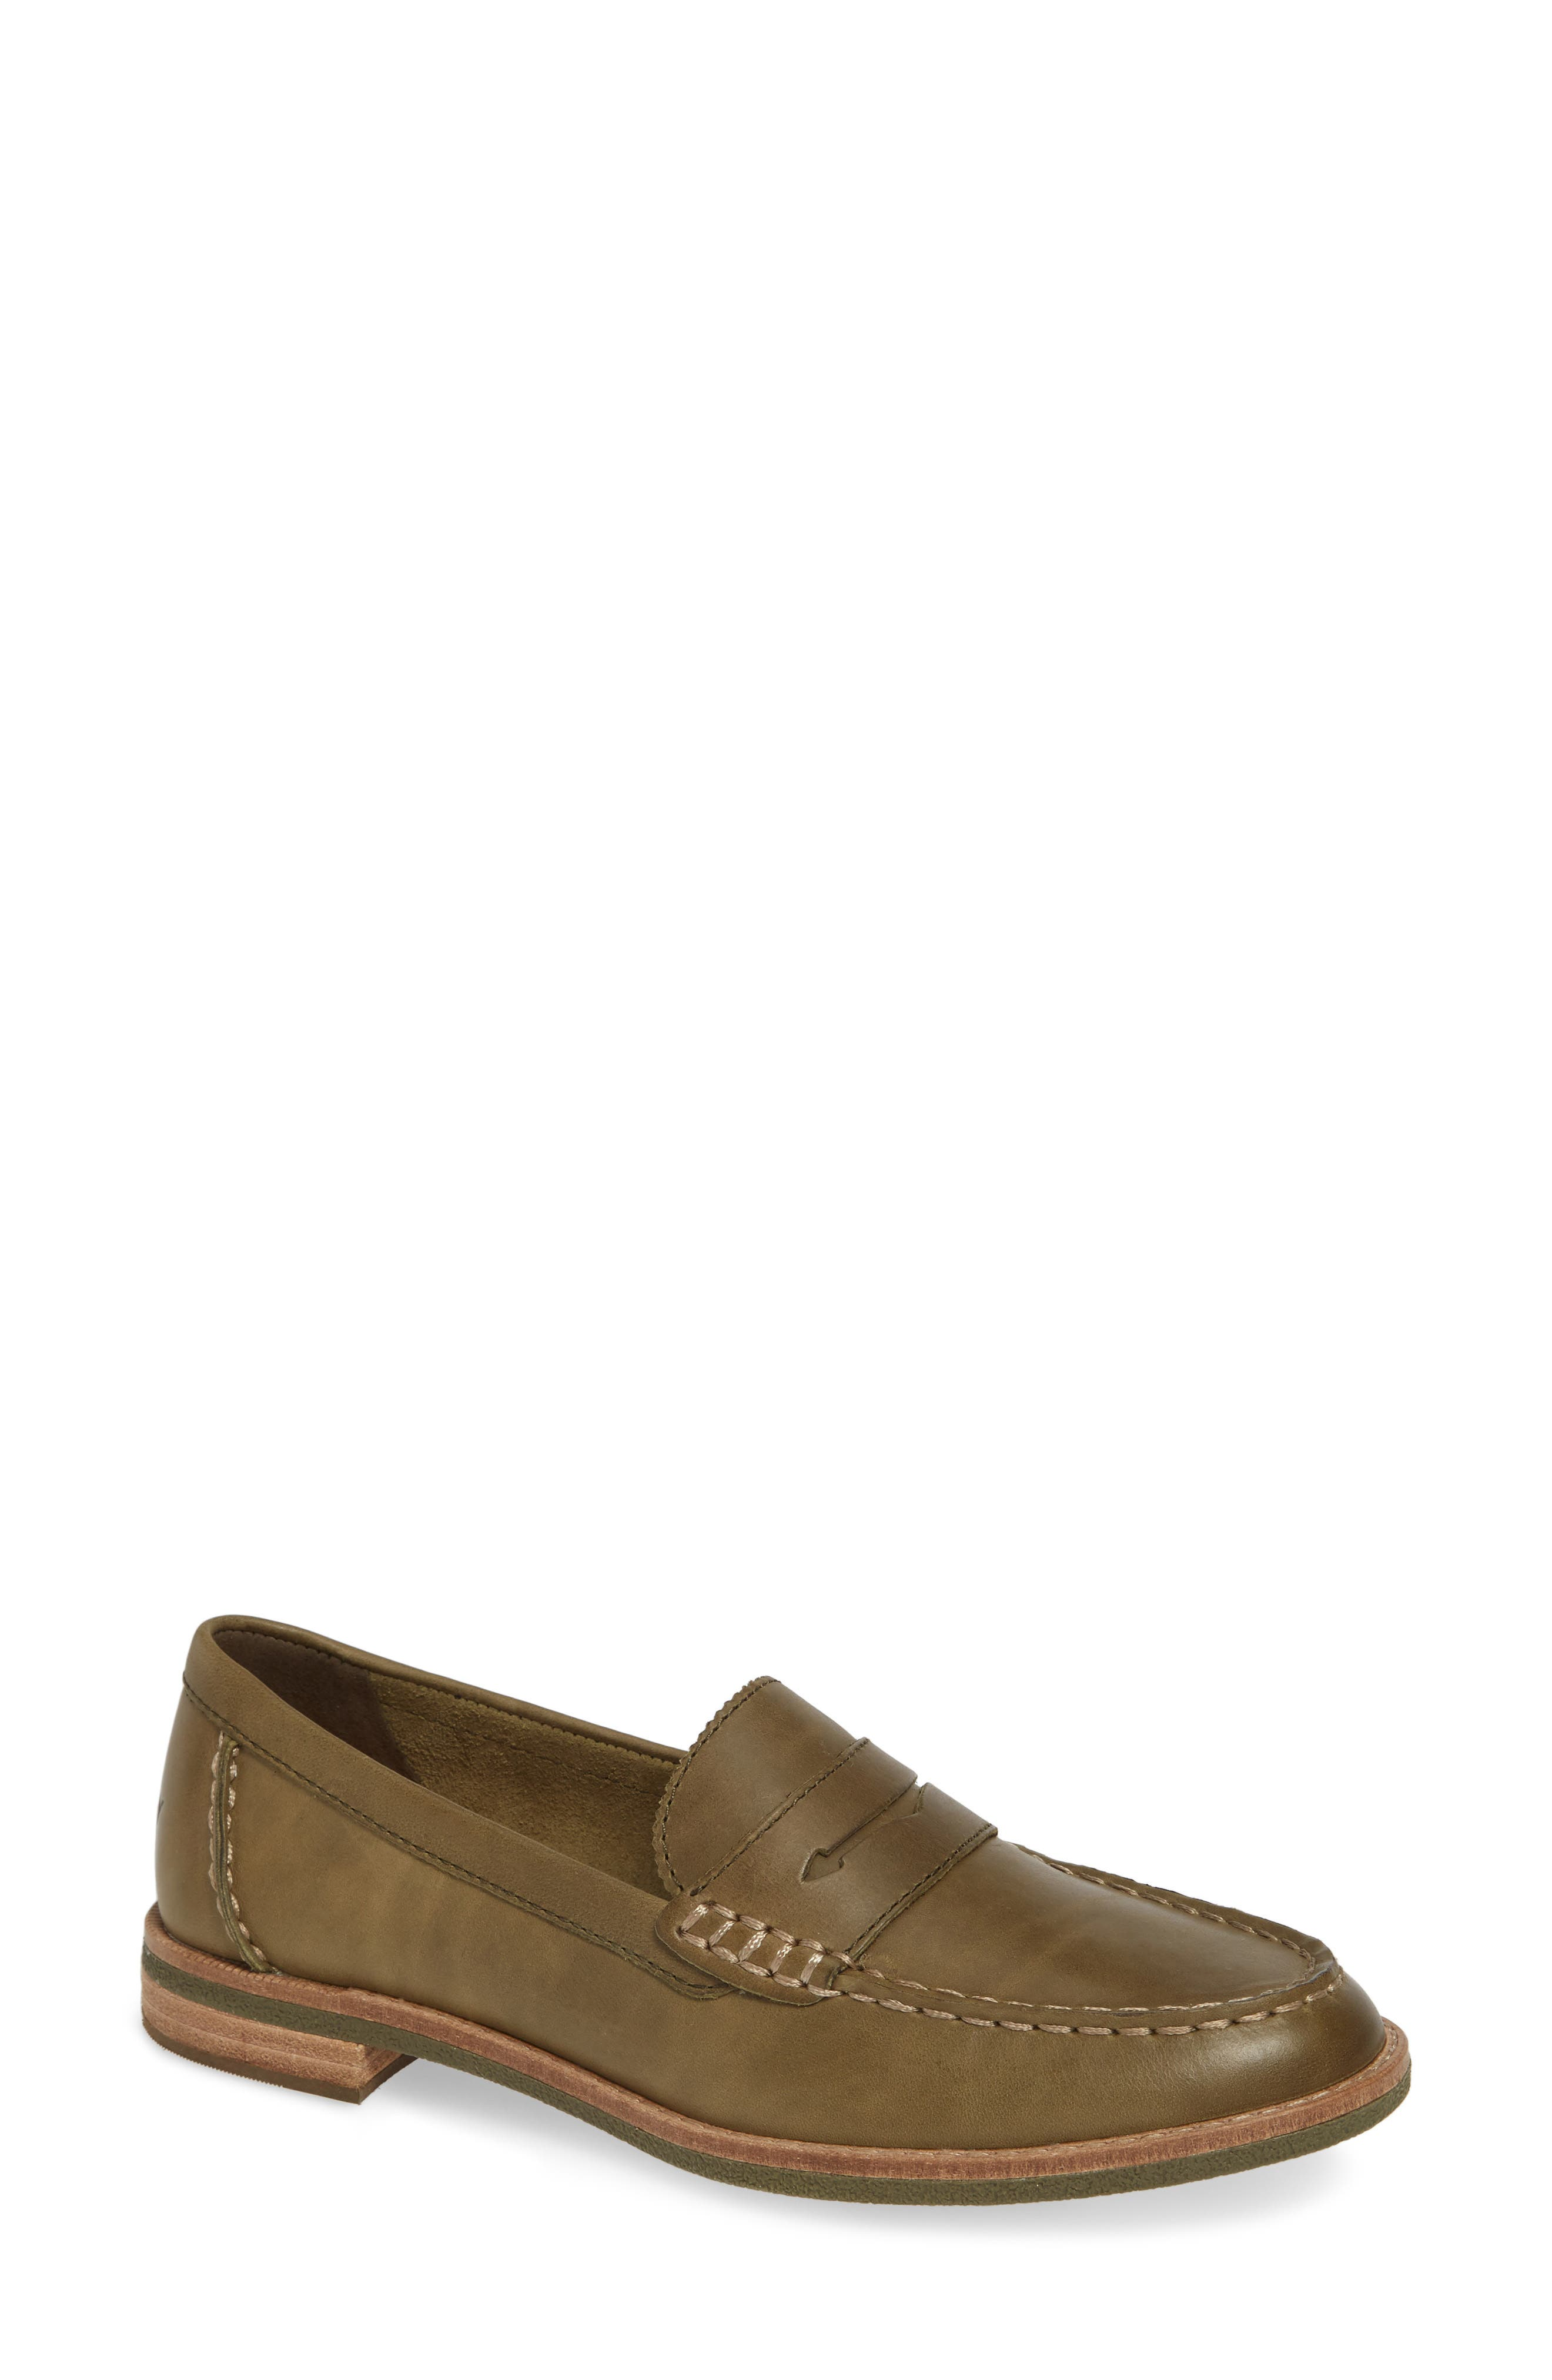 Seaport Penny Loafer,                         Main,                         color, OLIVE LEATHER